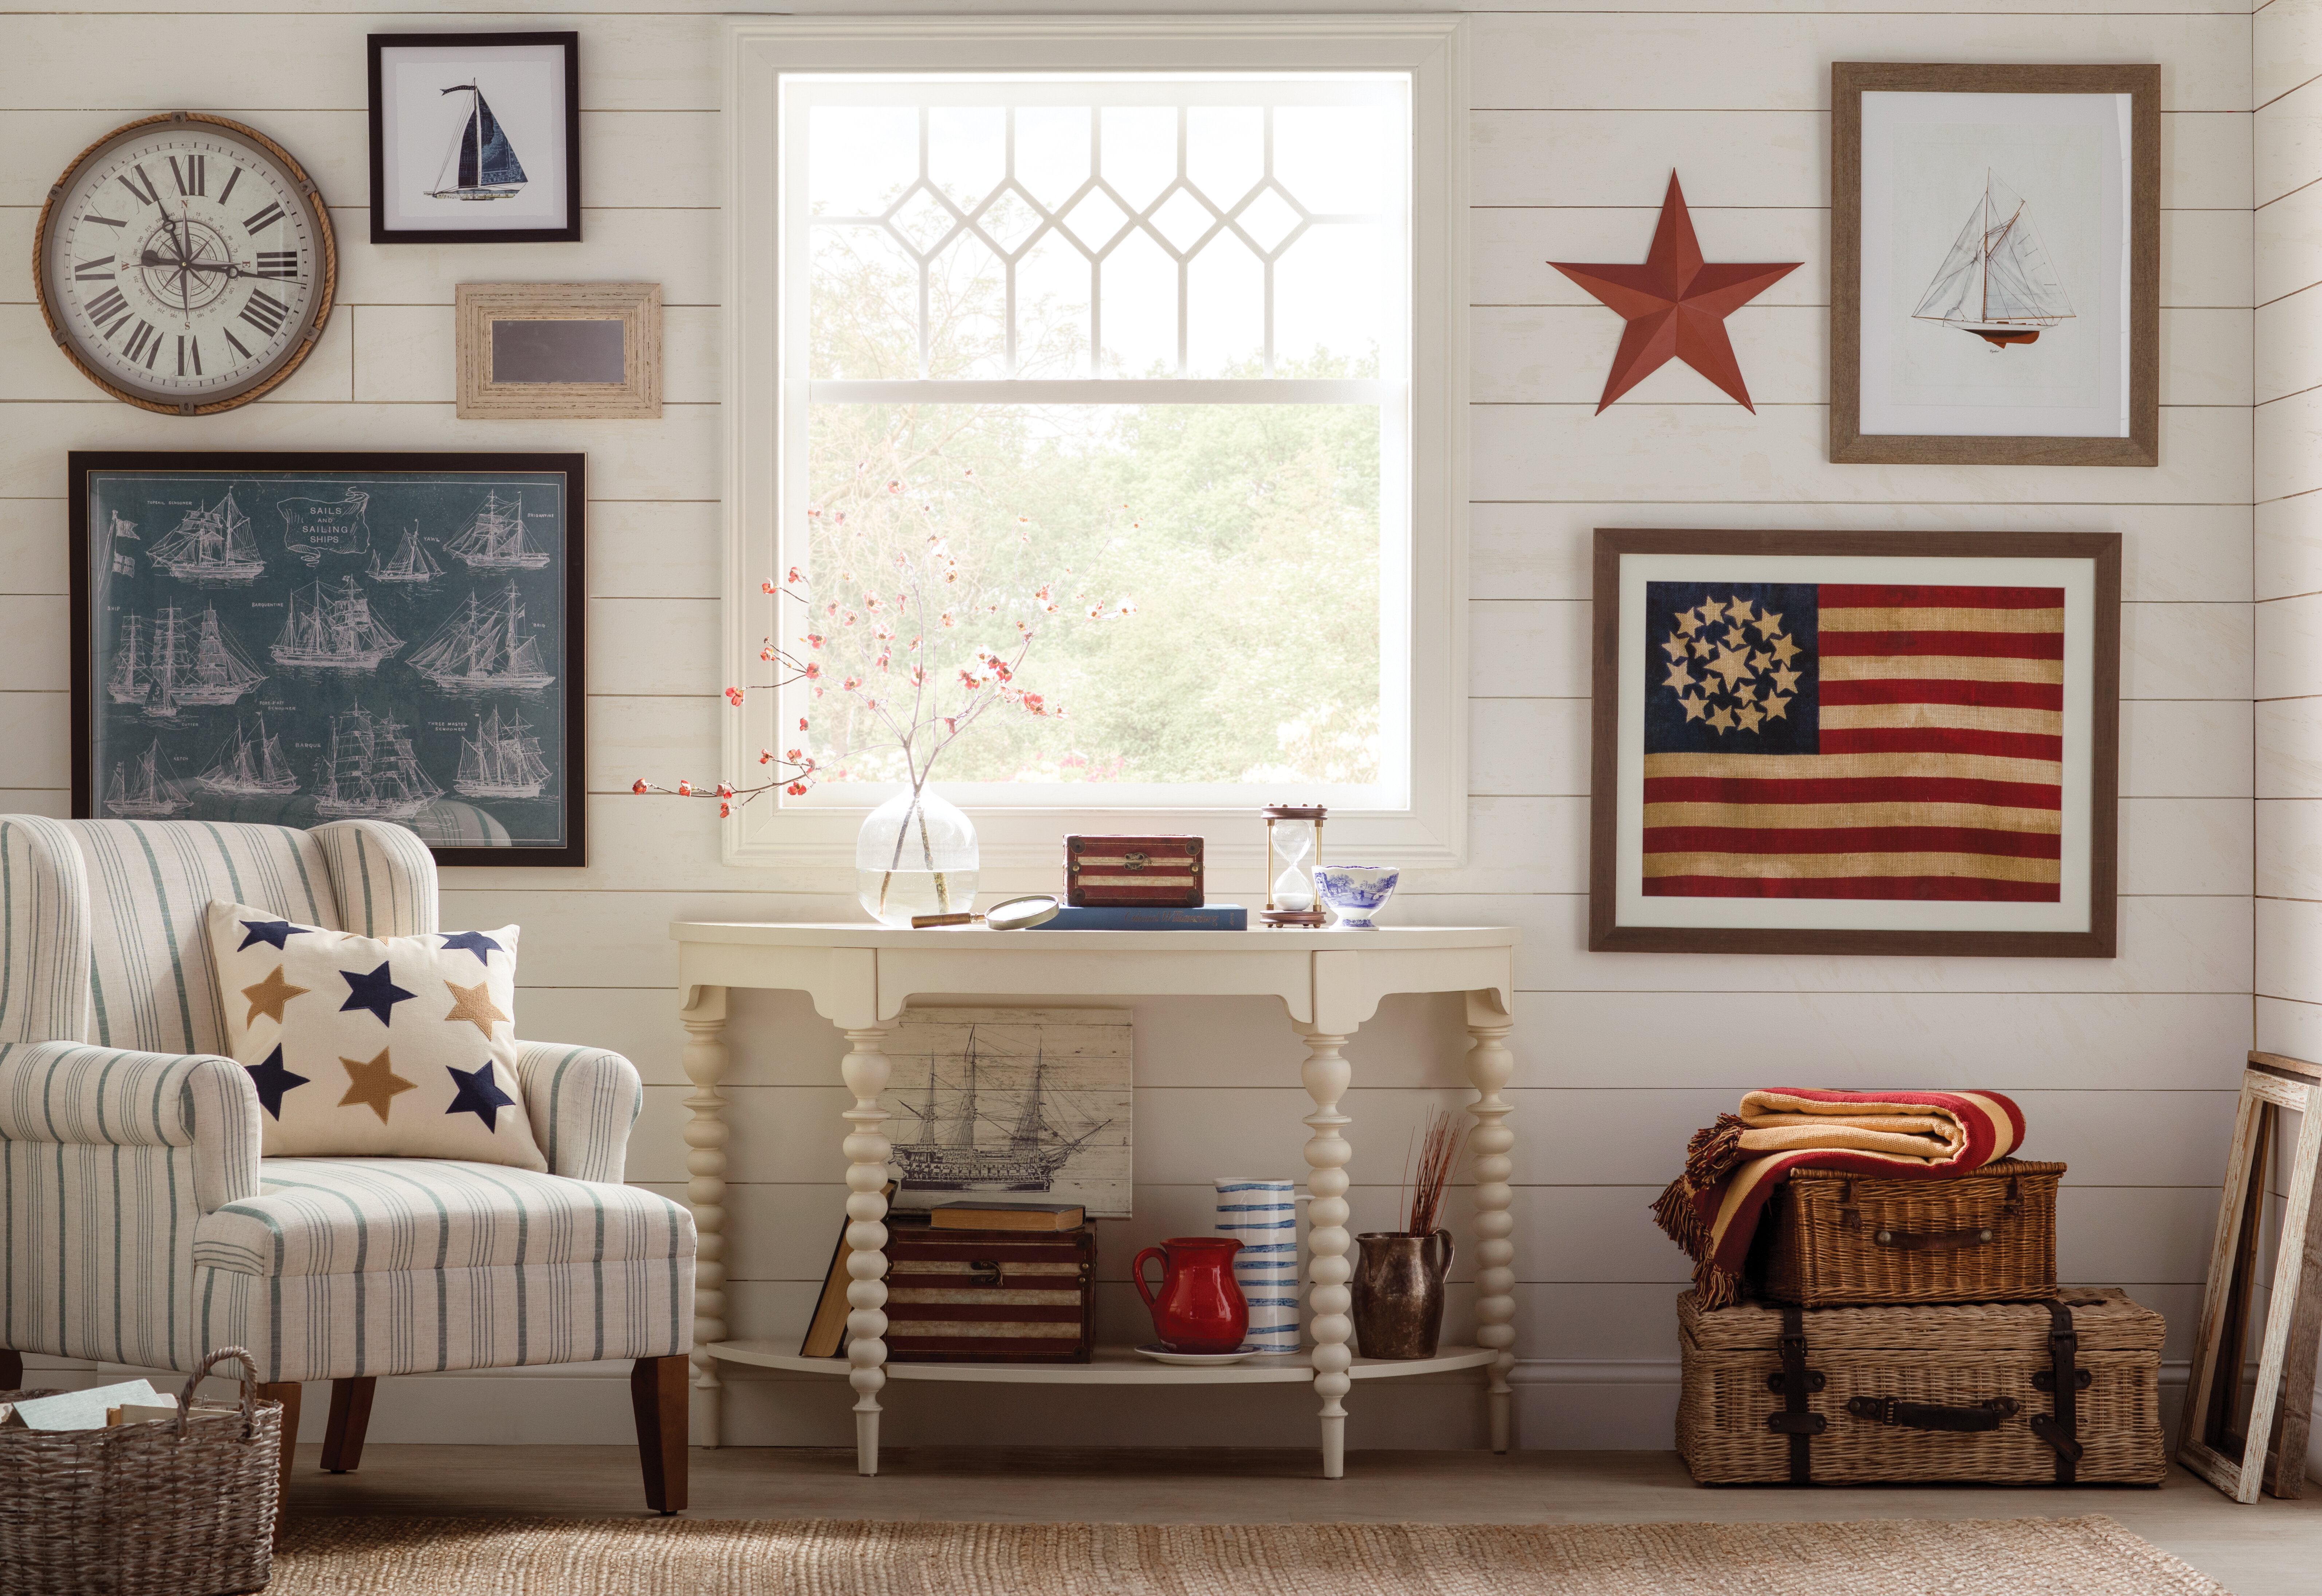 thematic gallery wall with patriotic tones